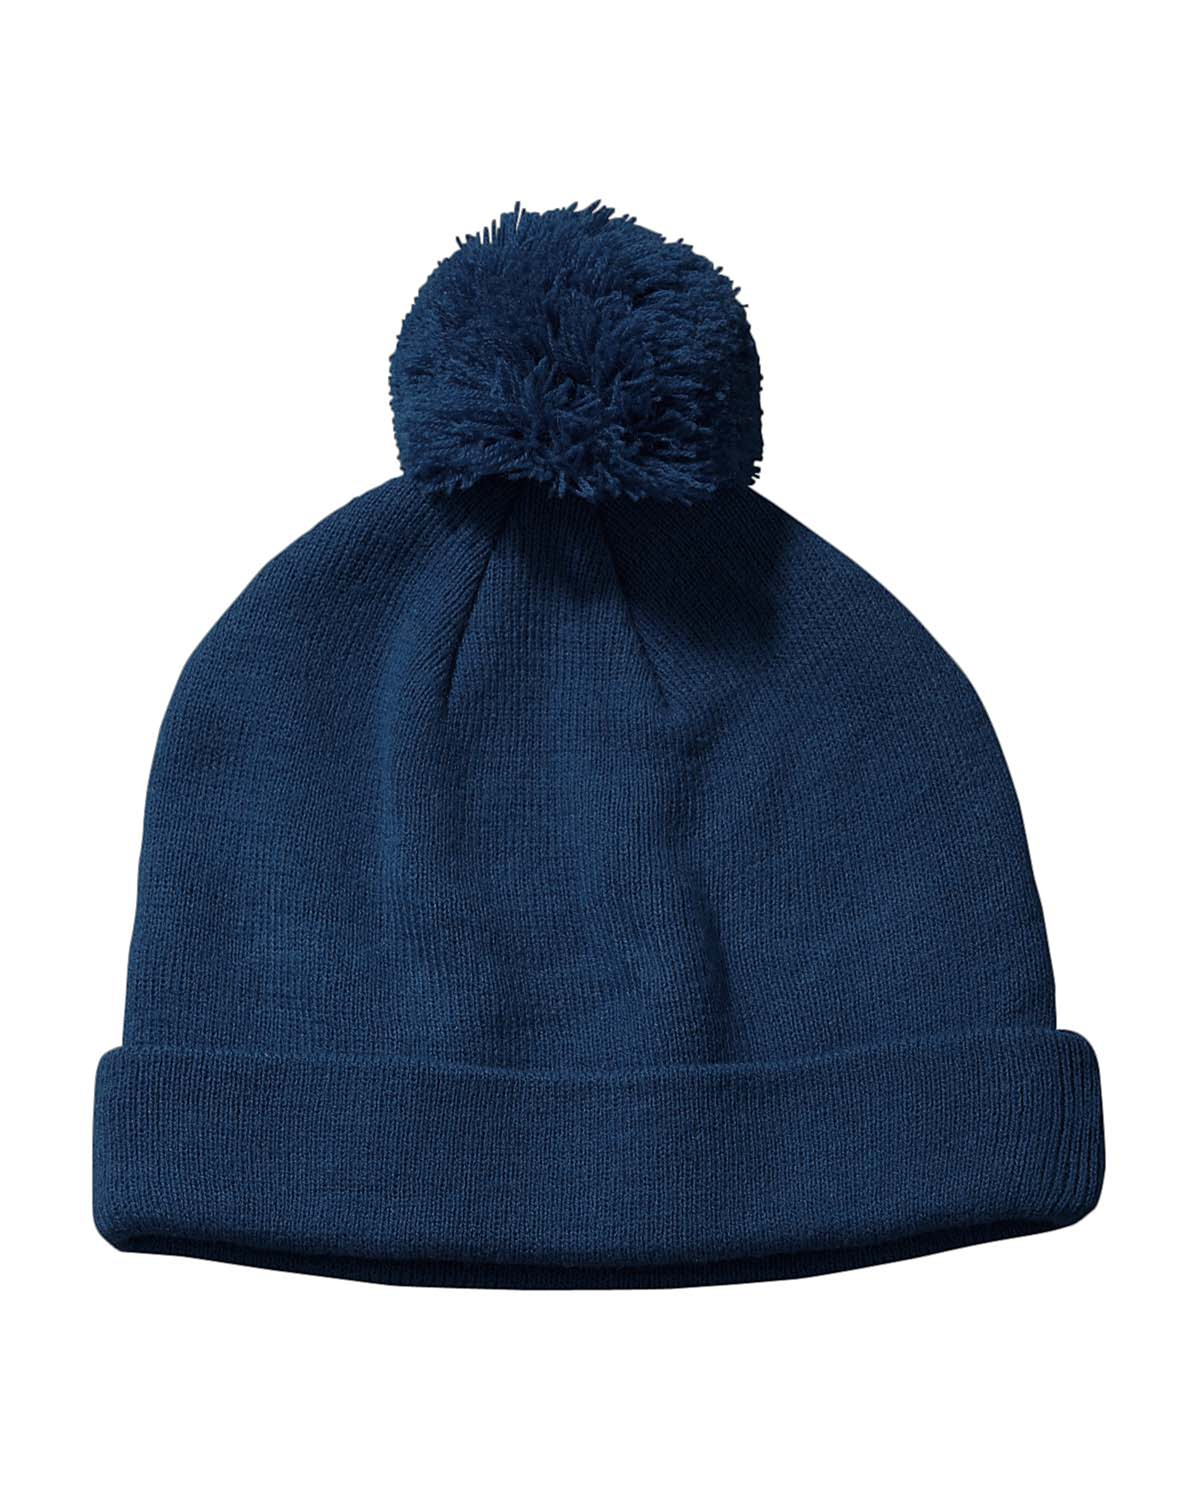 BX028- Big Accessories Knit Pom Beanie